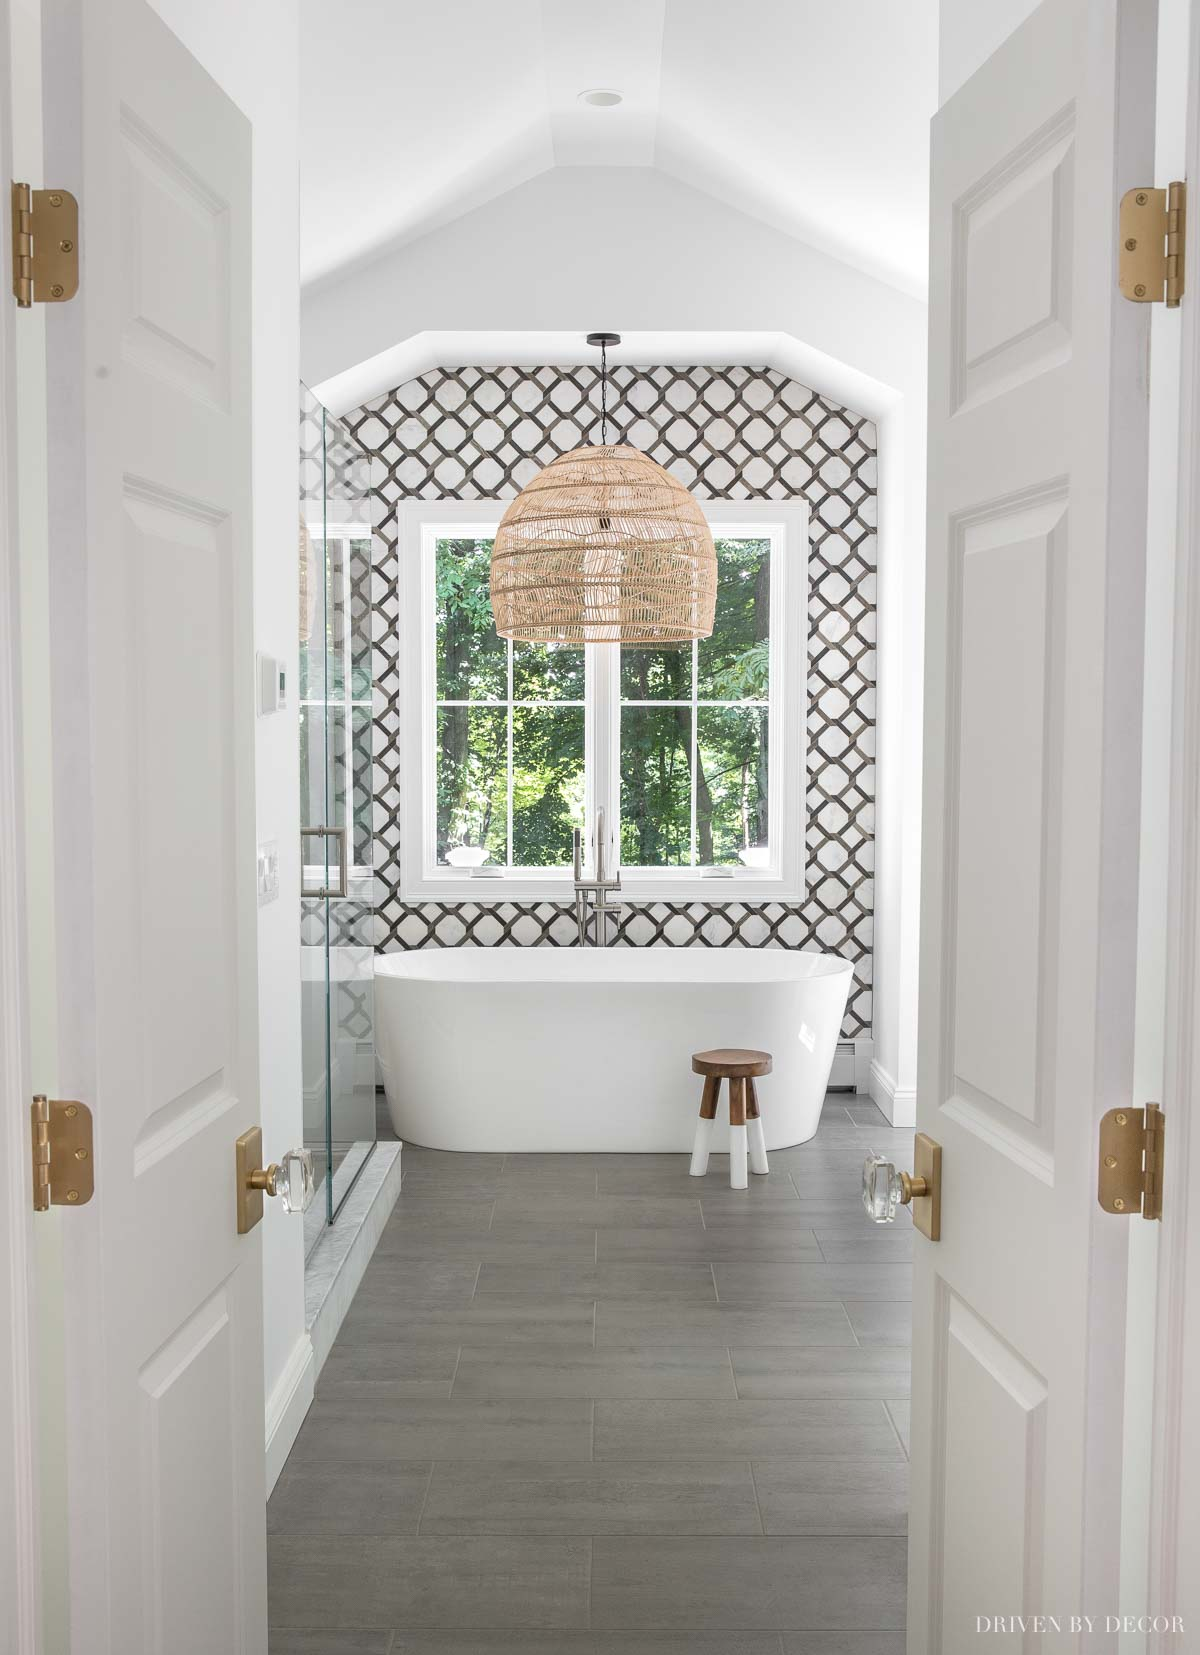 The floor tile in our master bathroom